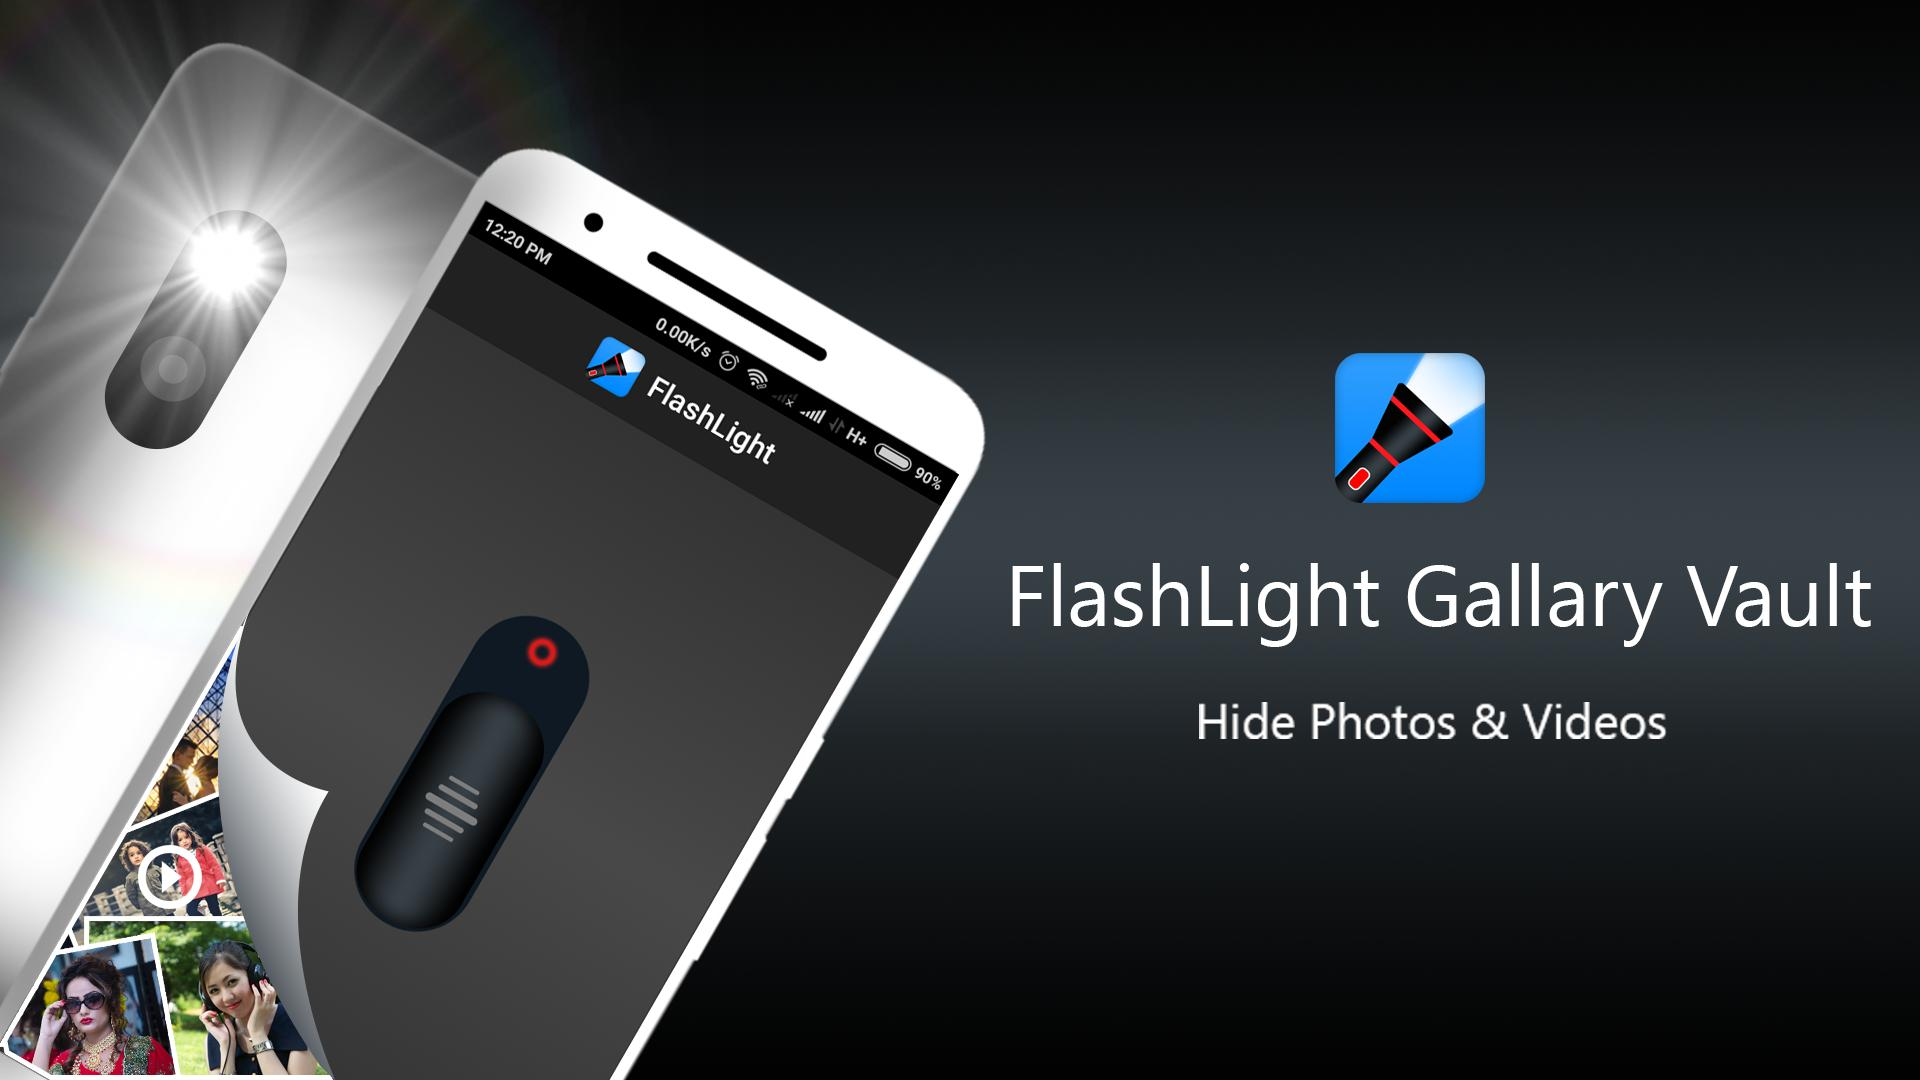 Flashlight Gallery Vault for Android - APK Download